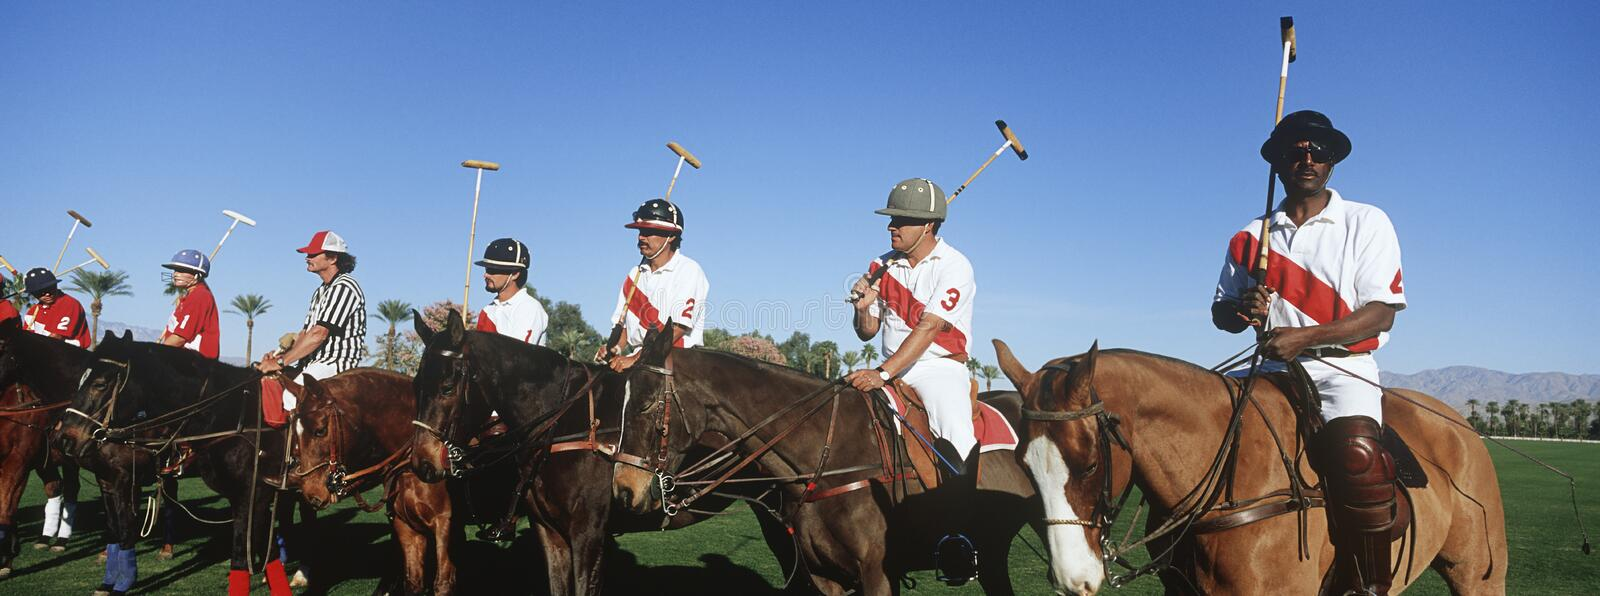 Polo Players And Umpire On hästar arkivfoto